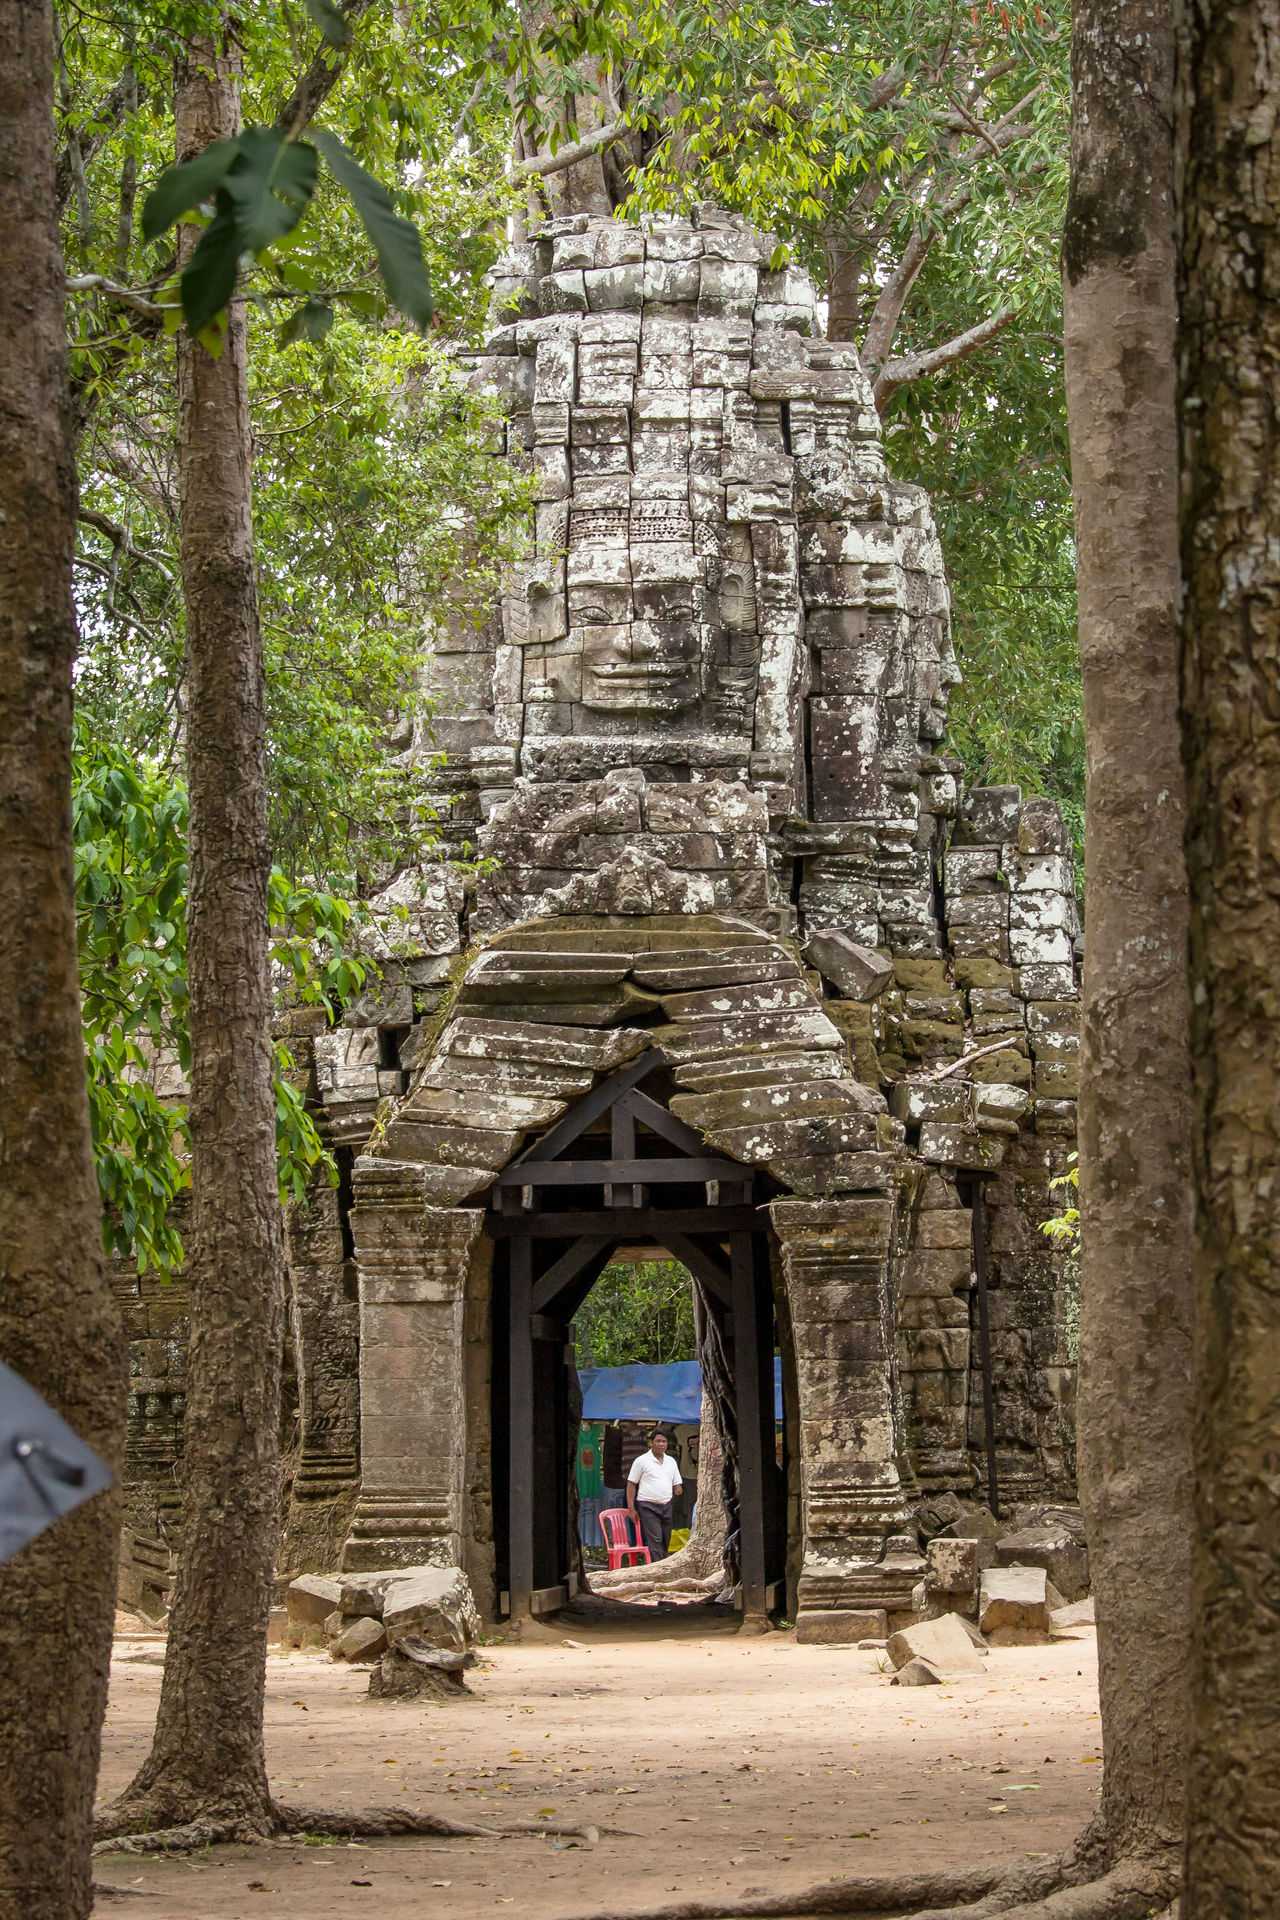 Ancient Ancient Civilization Architecture Building Exterior Built Structure Day History Nature No People Old Ruin Outdoors Place Of Worship Religion Spirituality Stone Material Tourism Travel Travel Destinations Tree Angkor Thom Cambodia